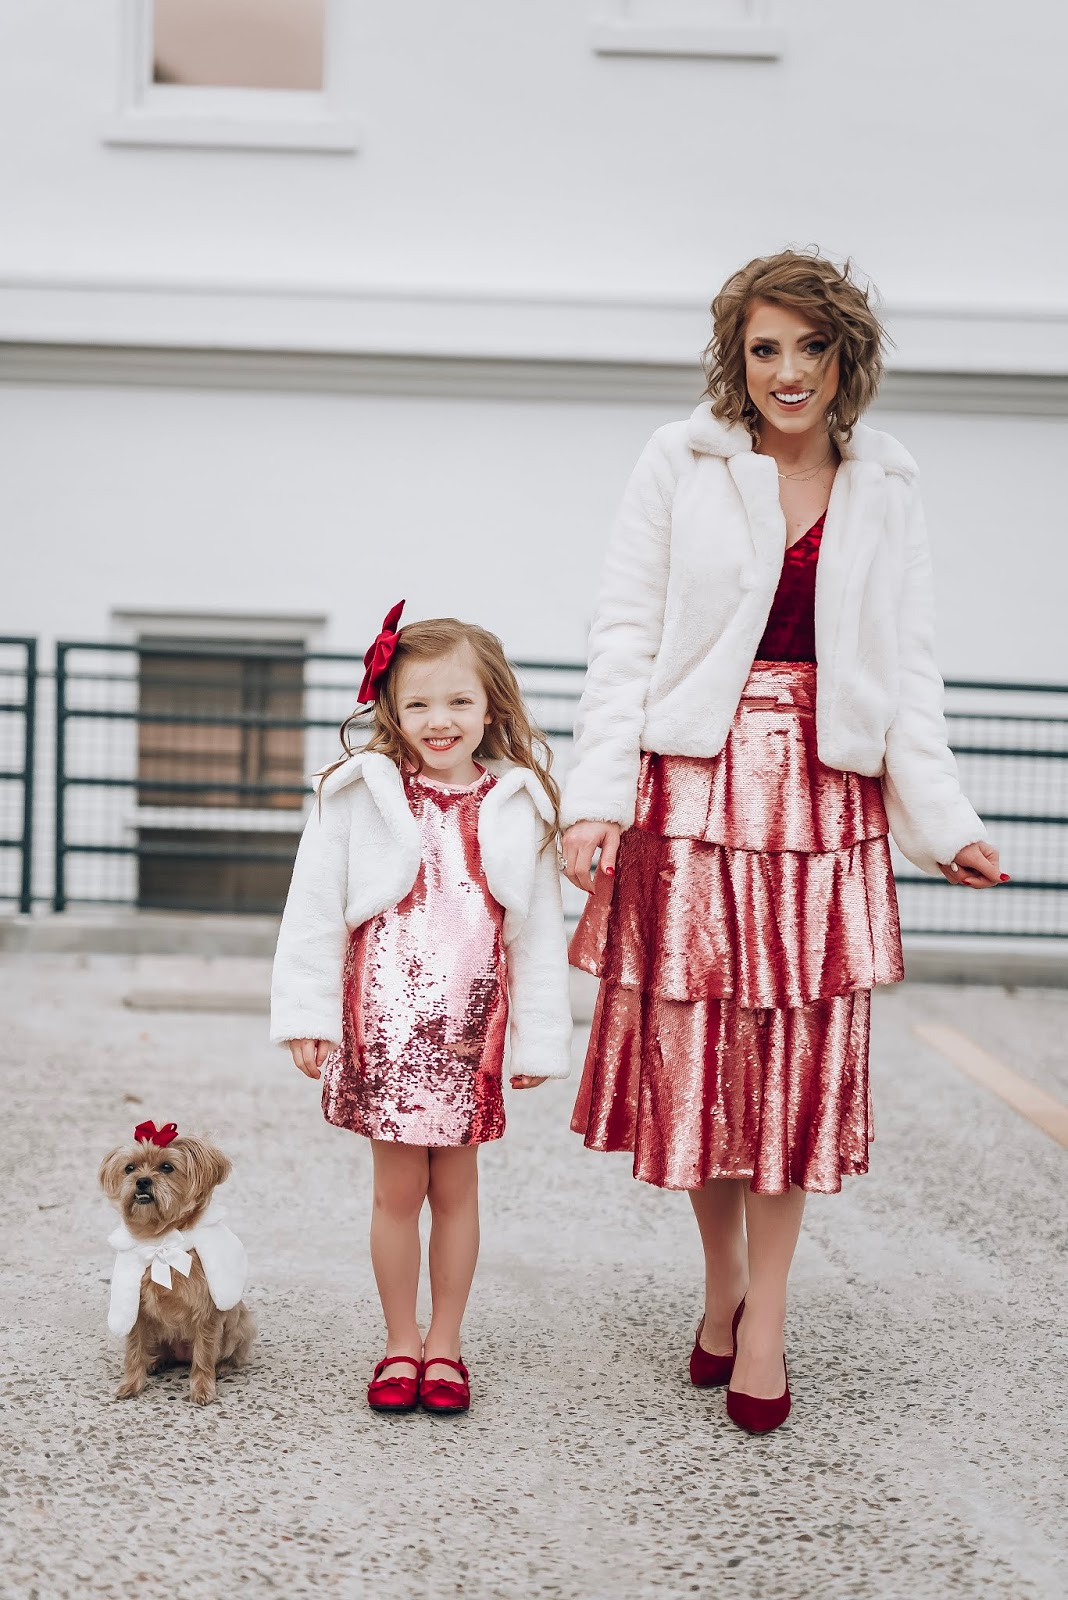 Reflecting on 2019 - NYE Style - Pink Sequins, Burgundy and white faux fur - Something Delightful Blog #NYEStyle #ReflectingOn2019 #SparkleInTheNewYear #MommyandMe